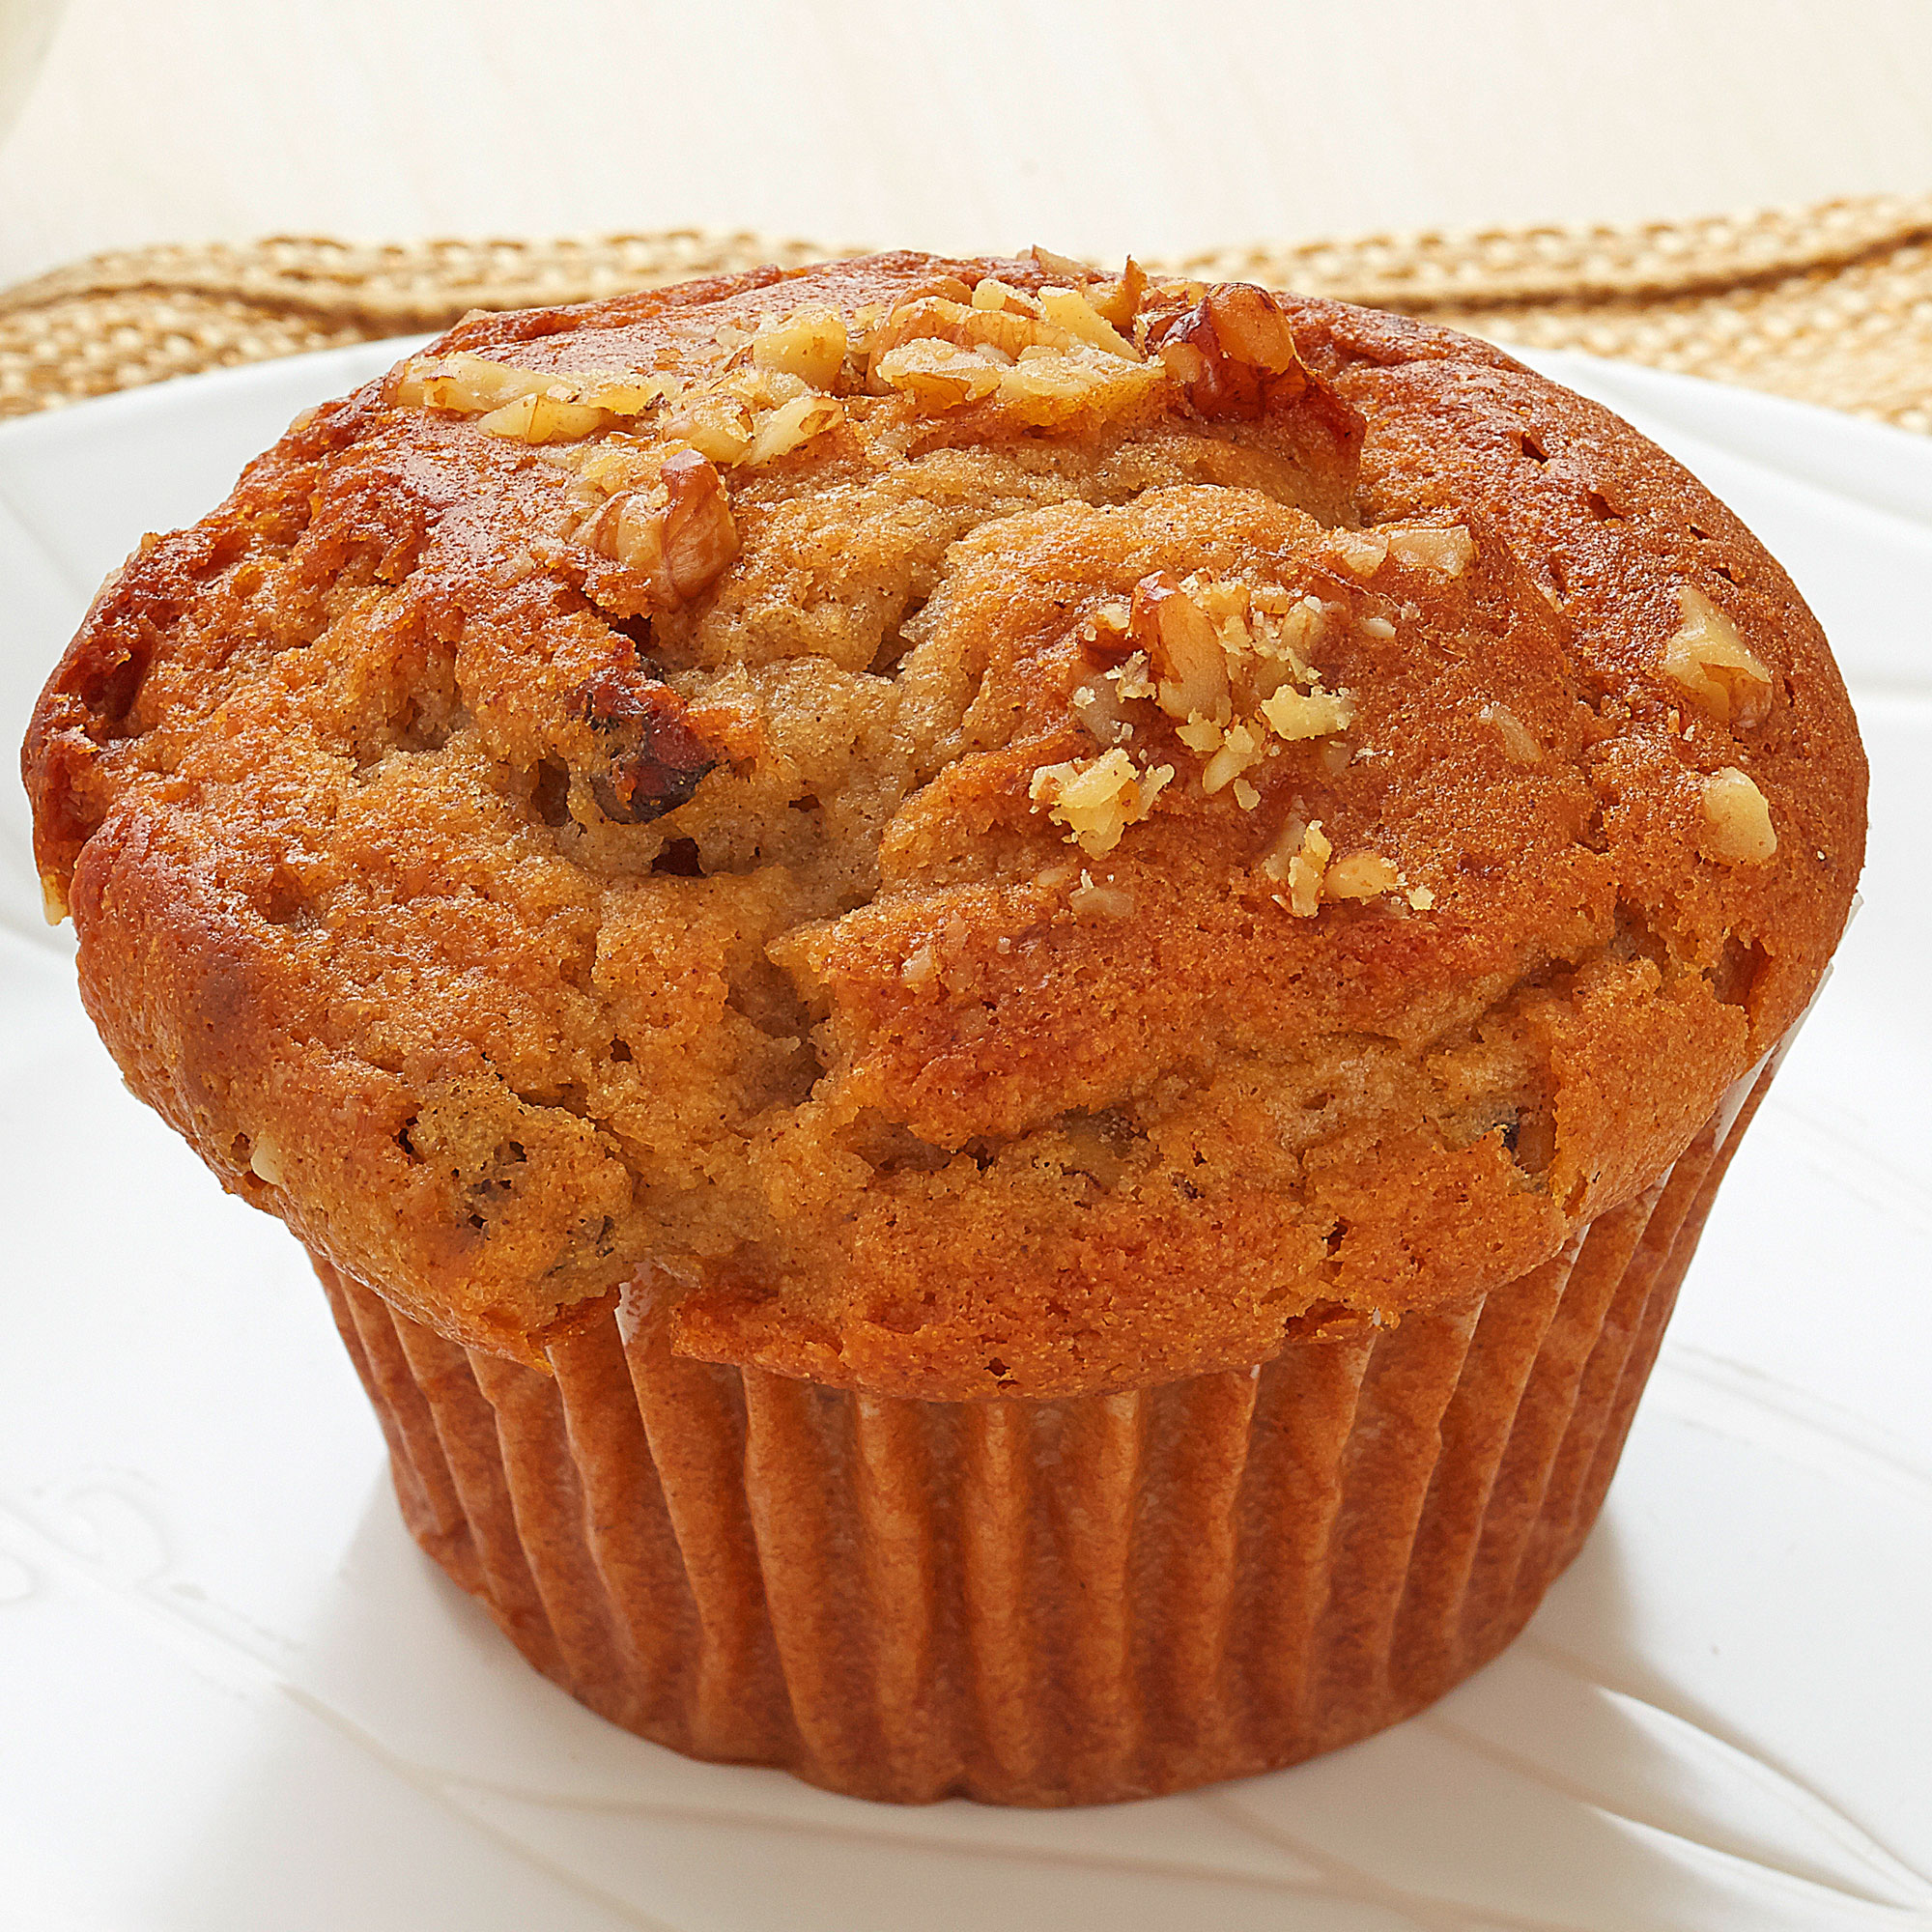 Banana-Nut Muffin - Little Pie Company